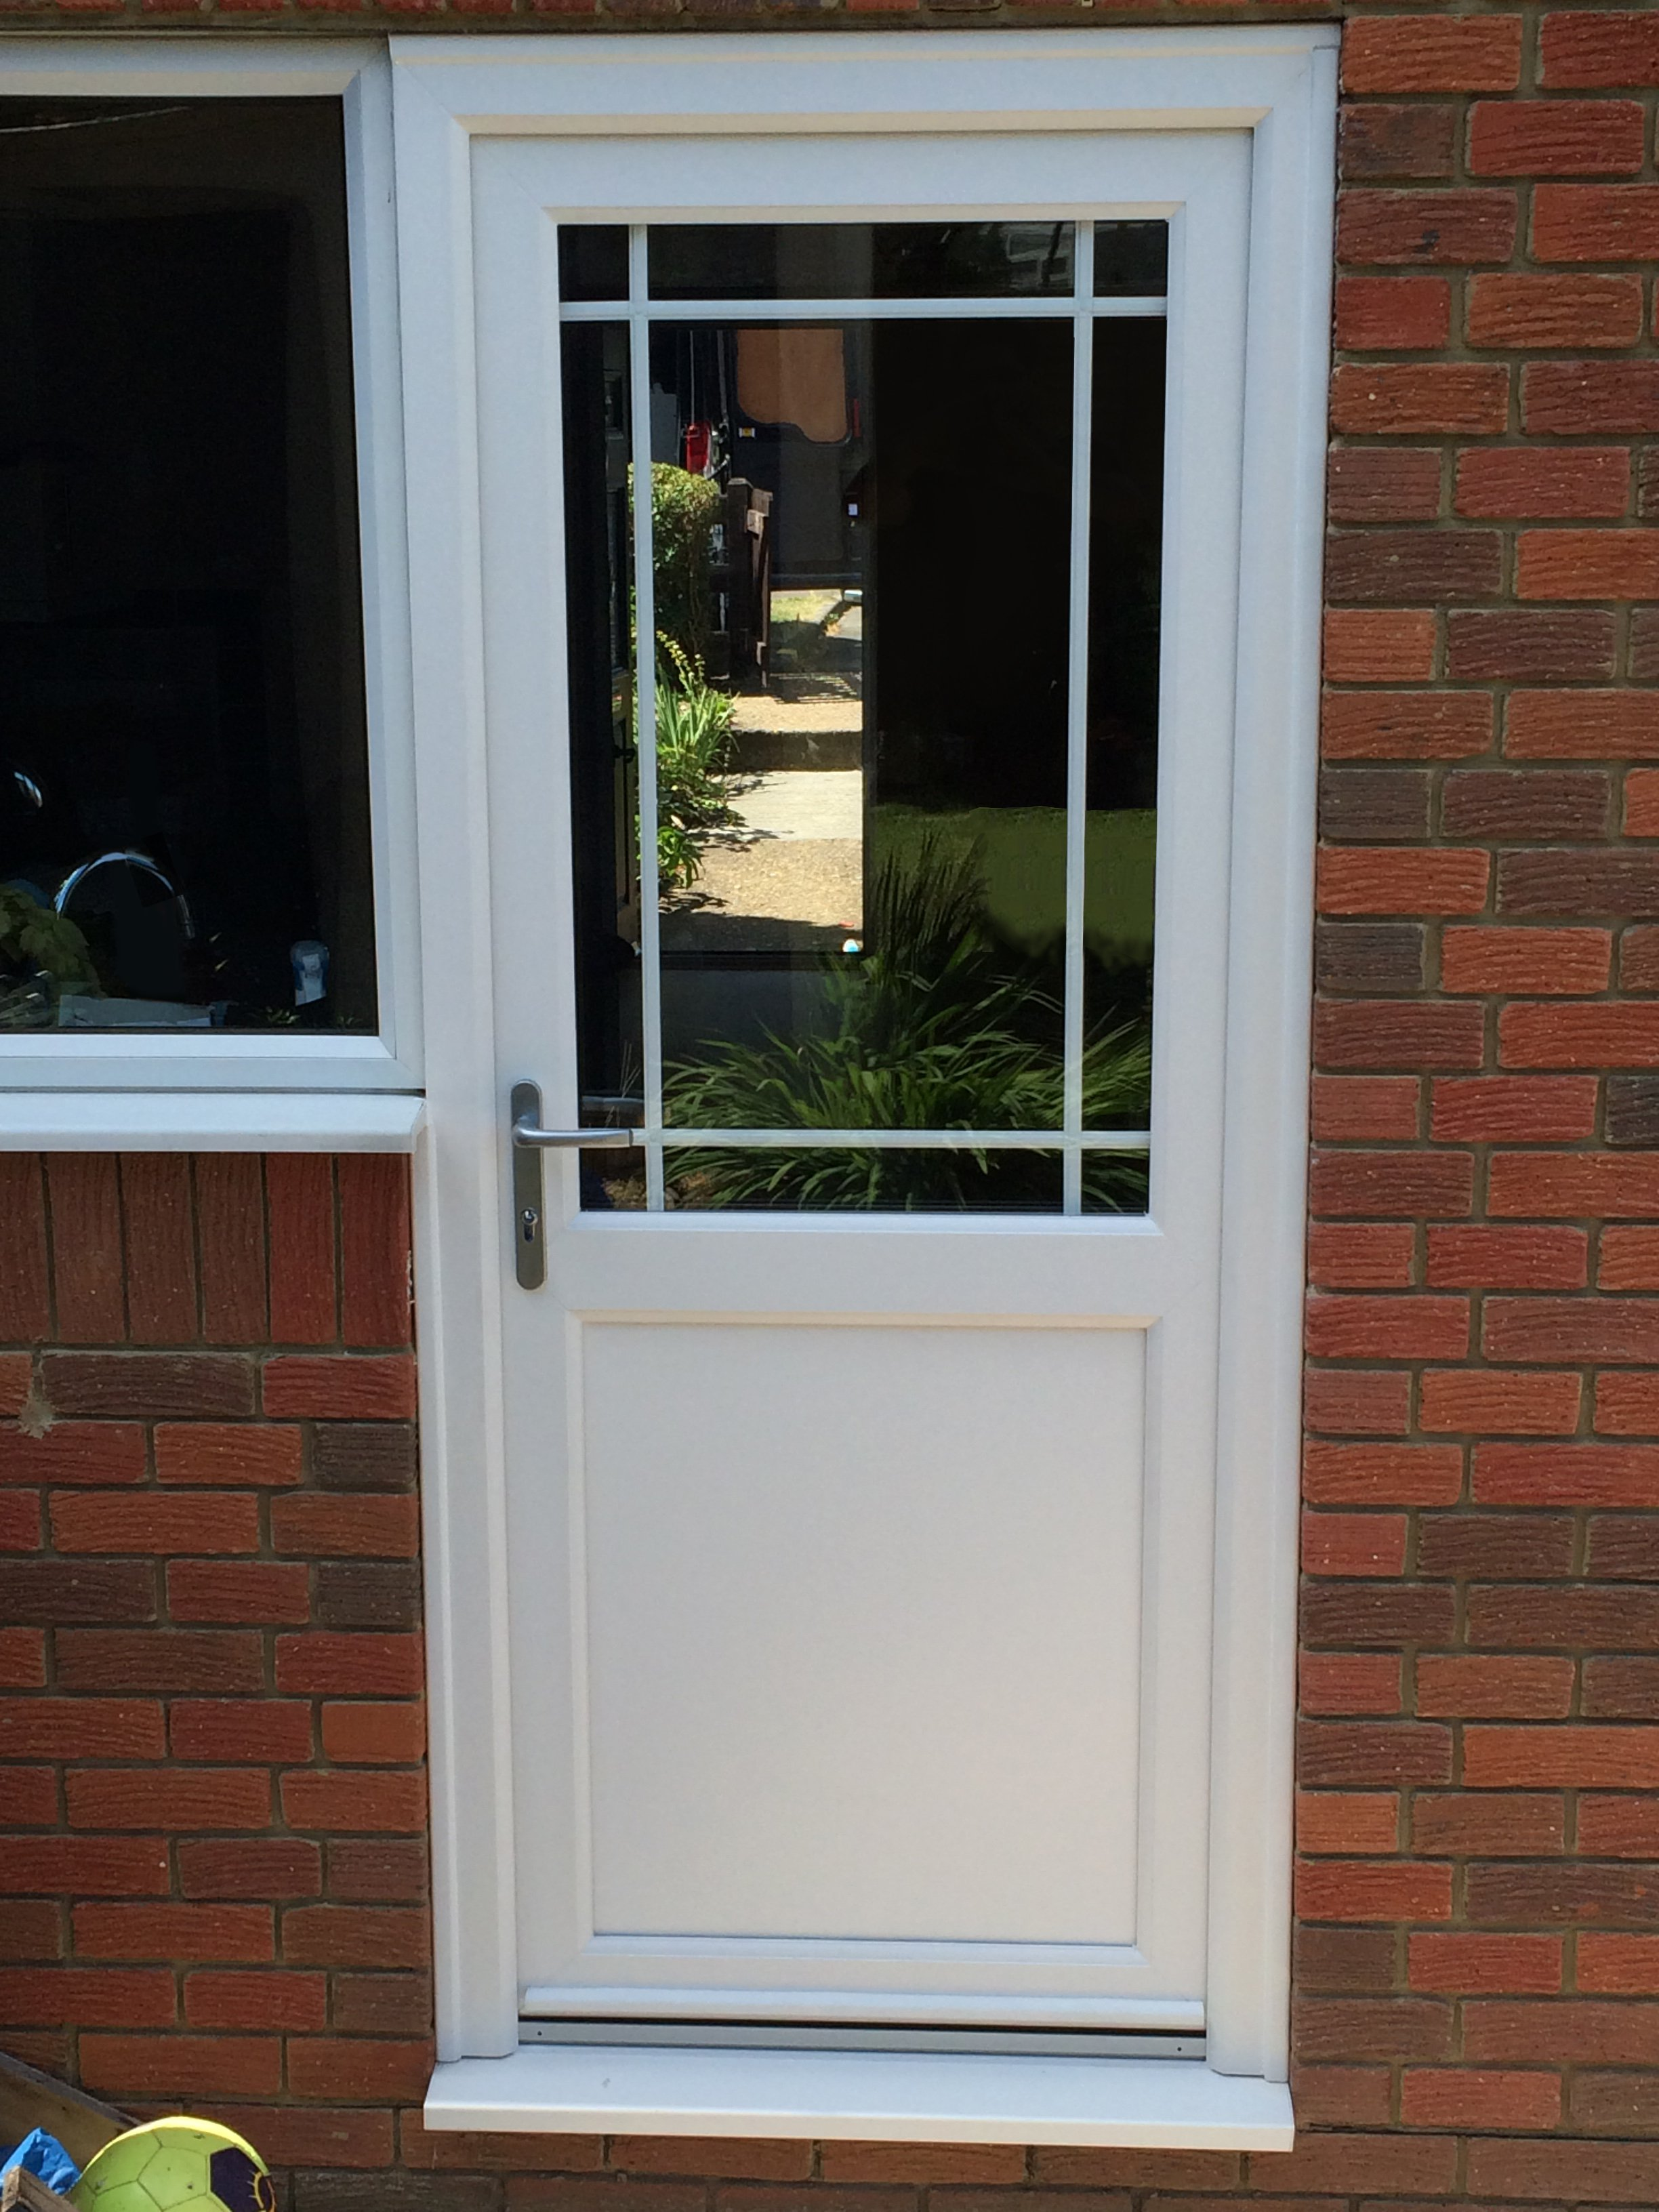 Fully fitted and supply only upvc composite doors by we for Back door with window that opens